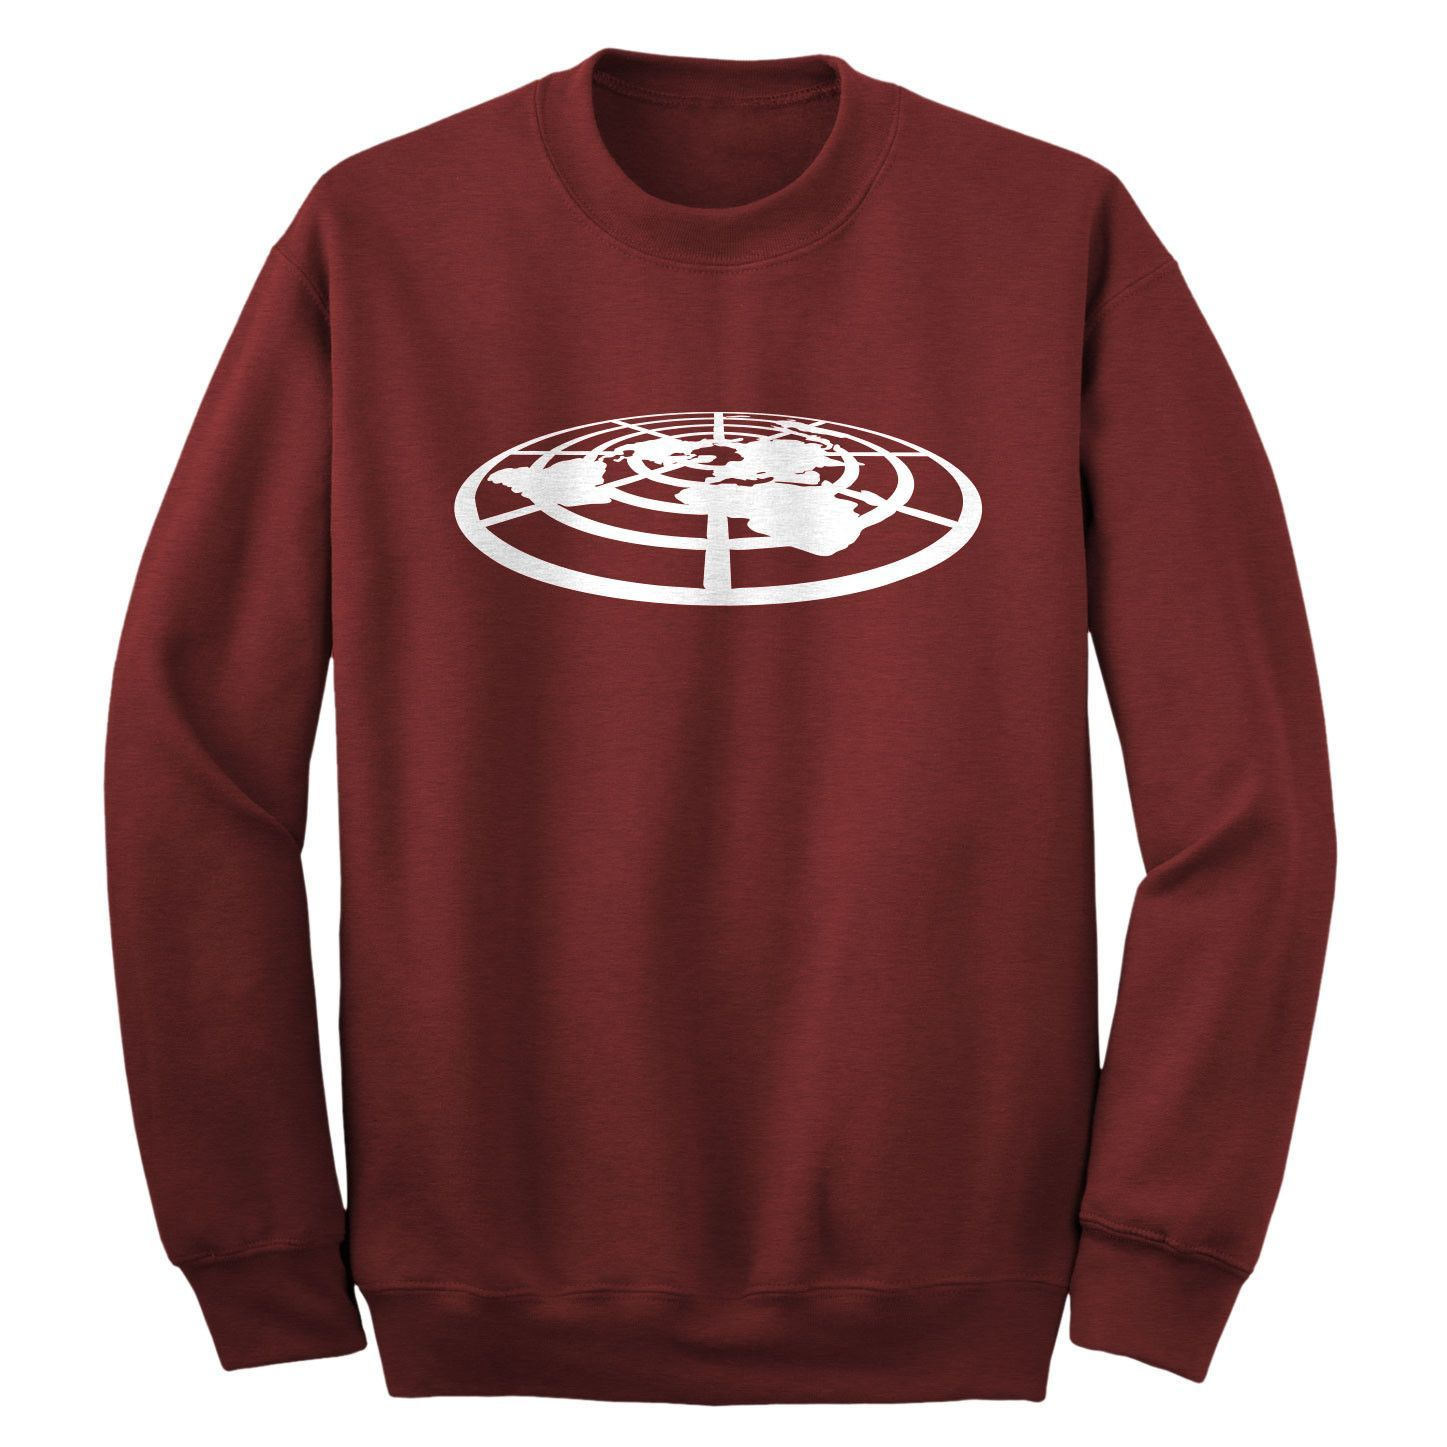 Flat Earth Society Adult Crewneck Sweatshirt Products